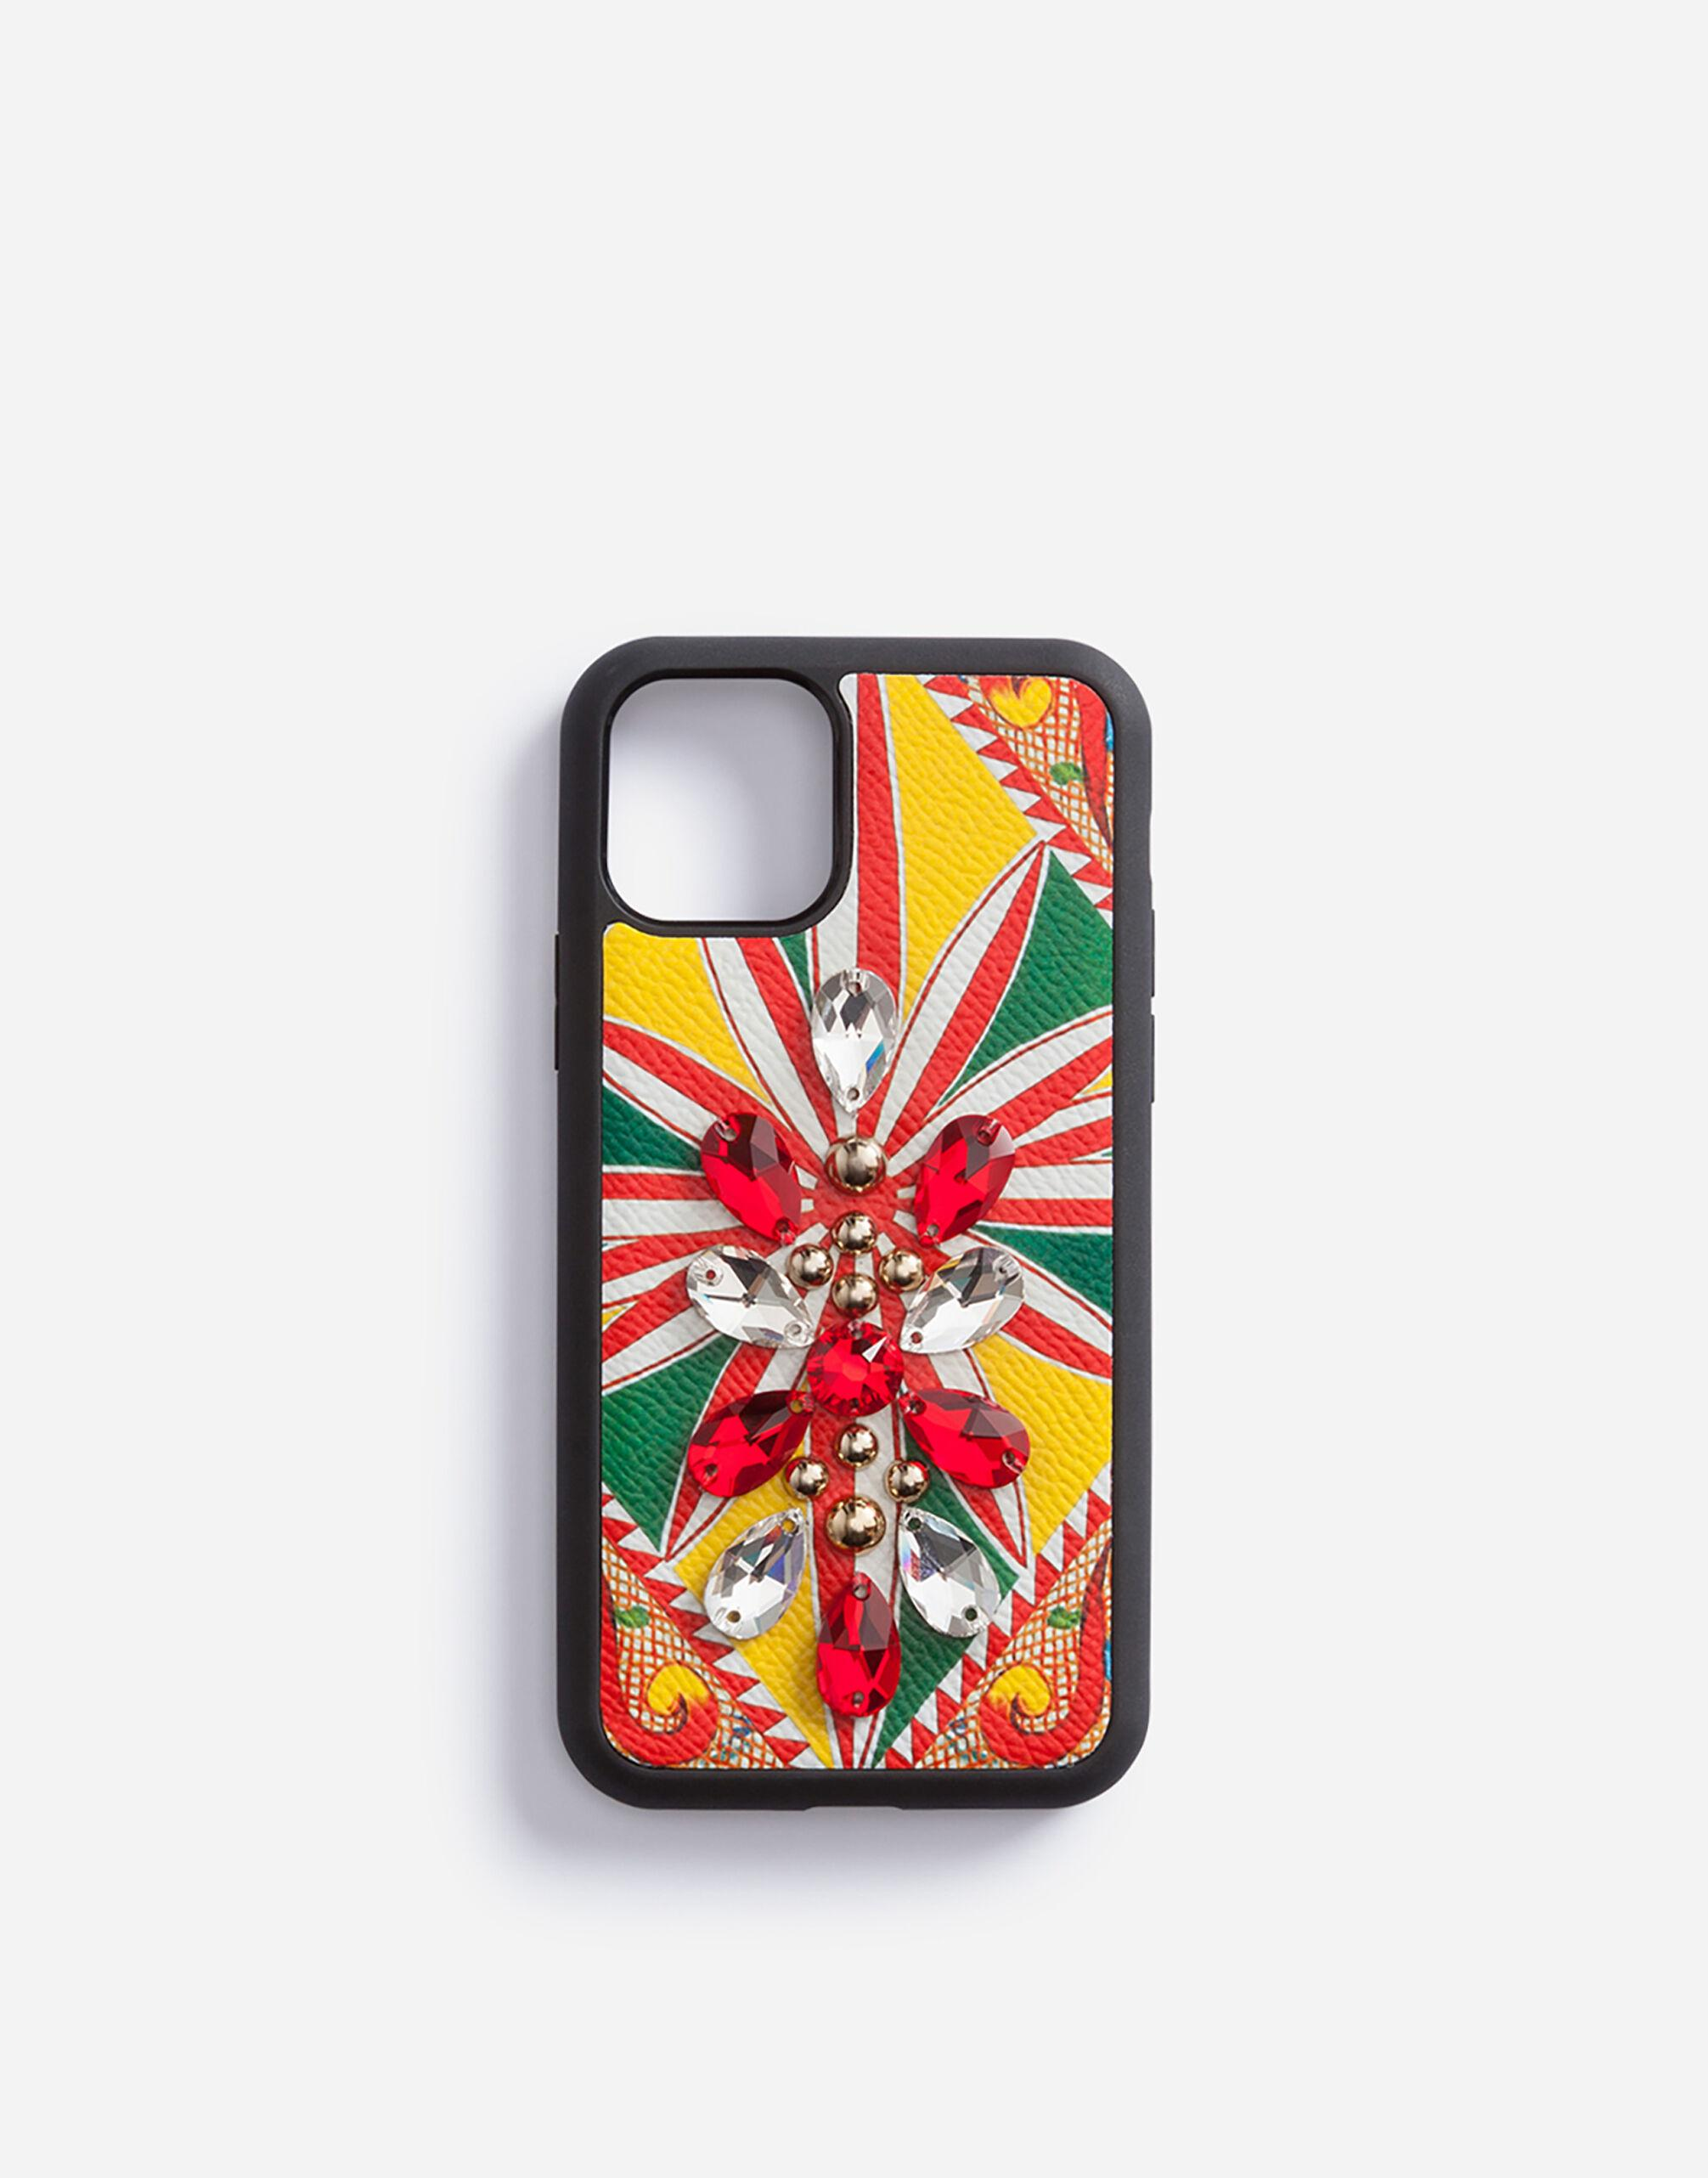 IPhone 11 Pro cover in carretto-print dauphine calfskin with embroidery